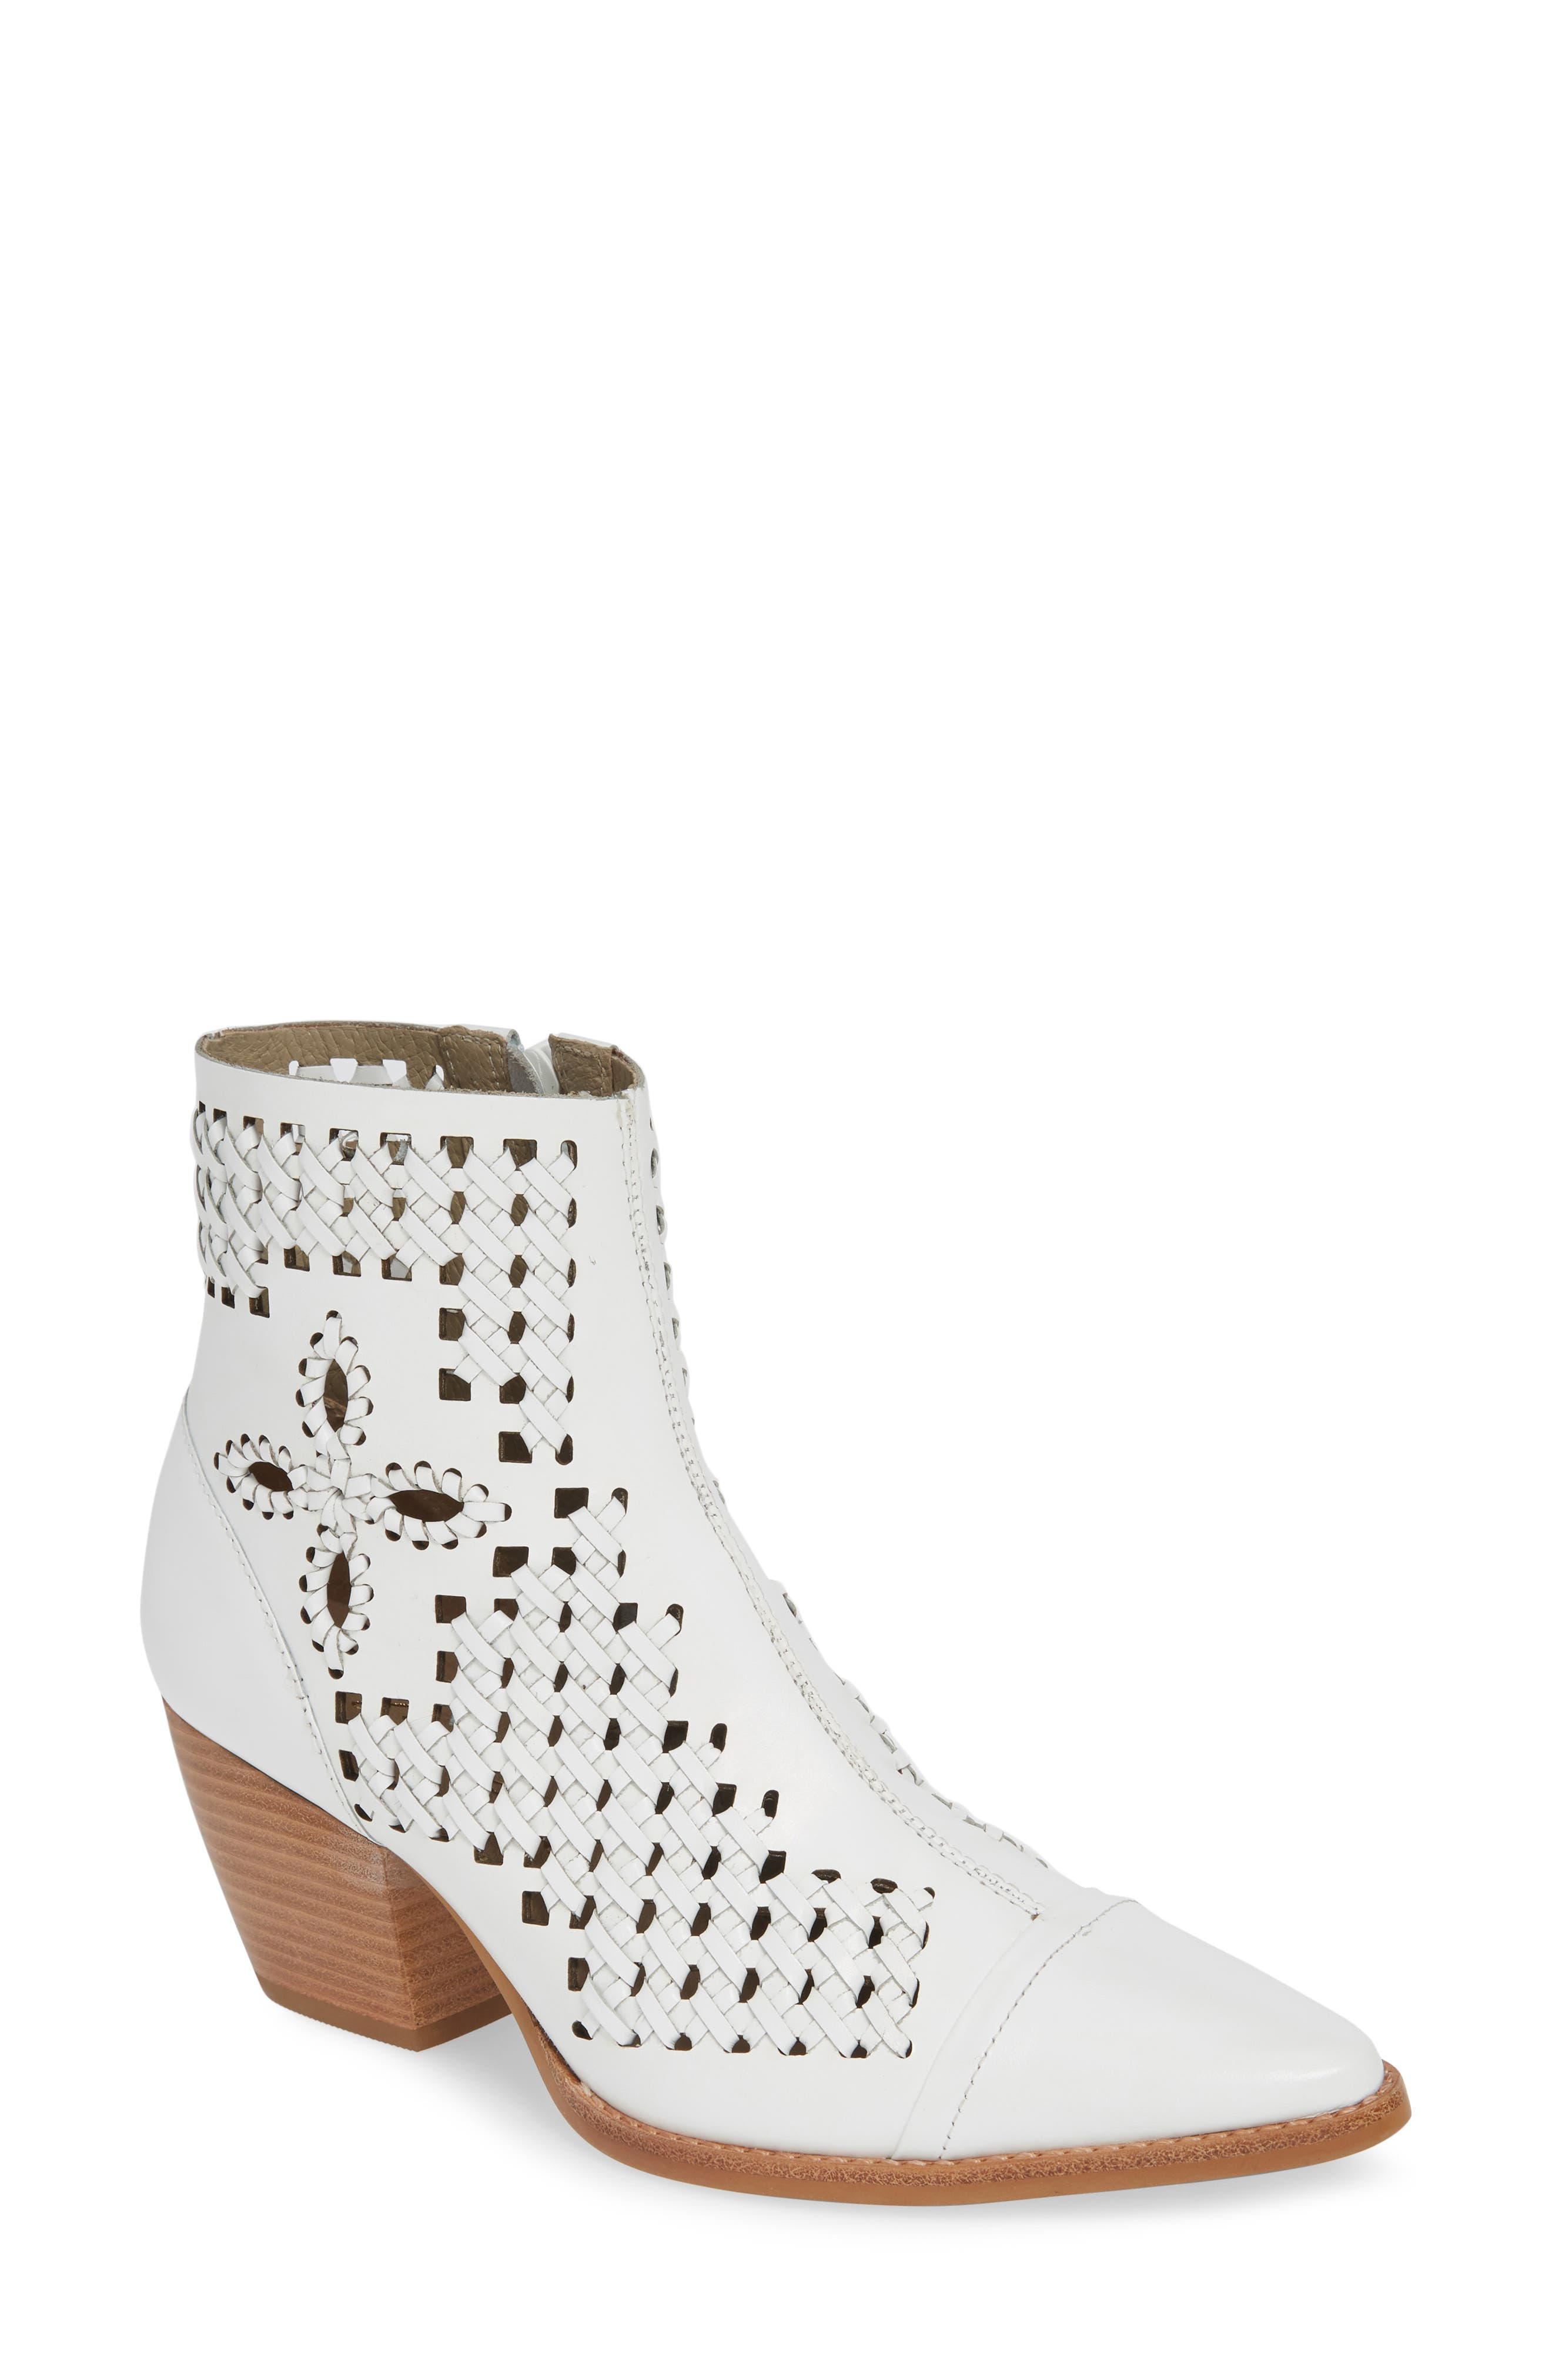 Matisse Bello Woven Pointy Toe Bootie, White